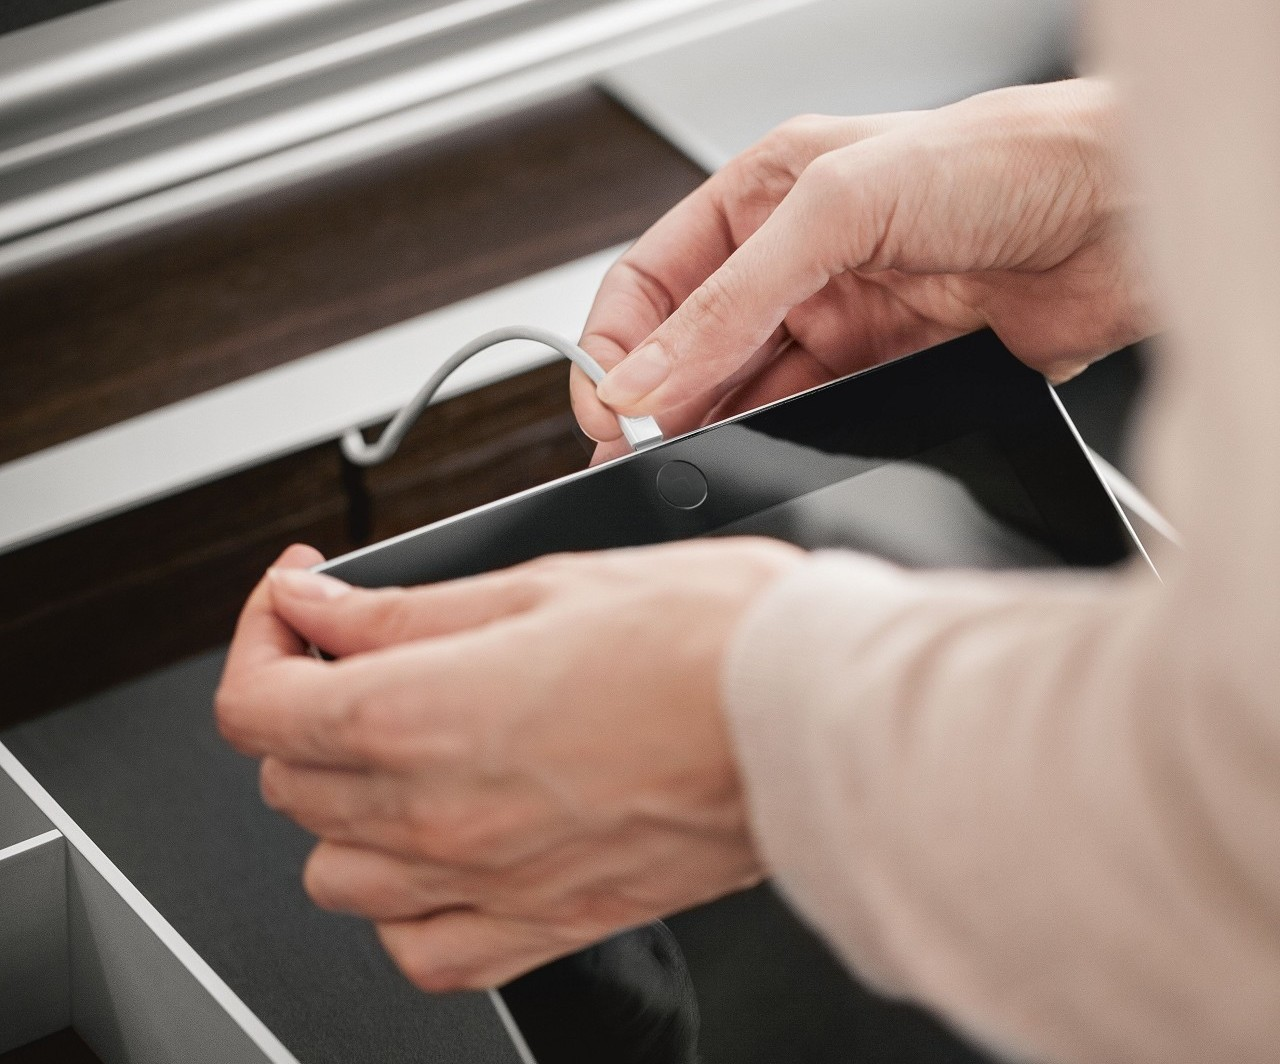 Integrated USB connection for iPad and more in kitchen drawers from SieMatic